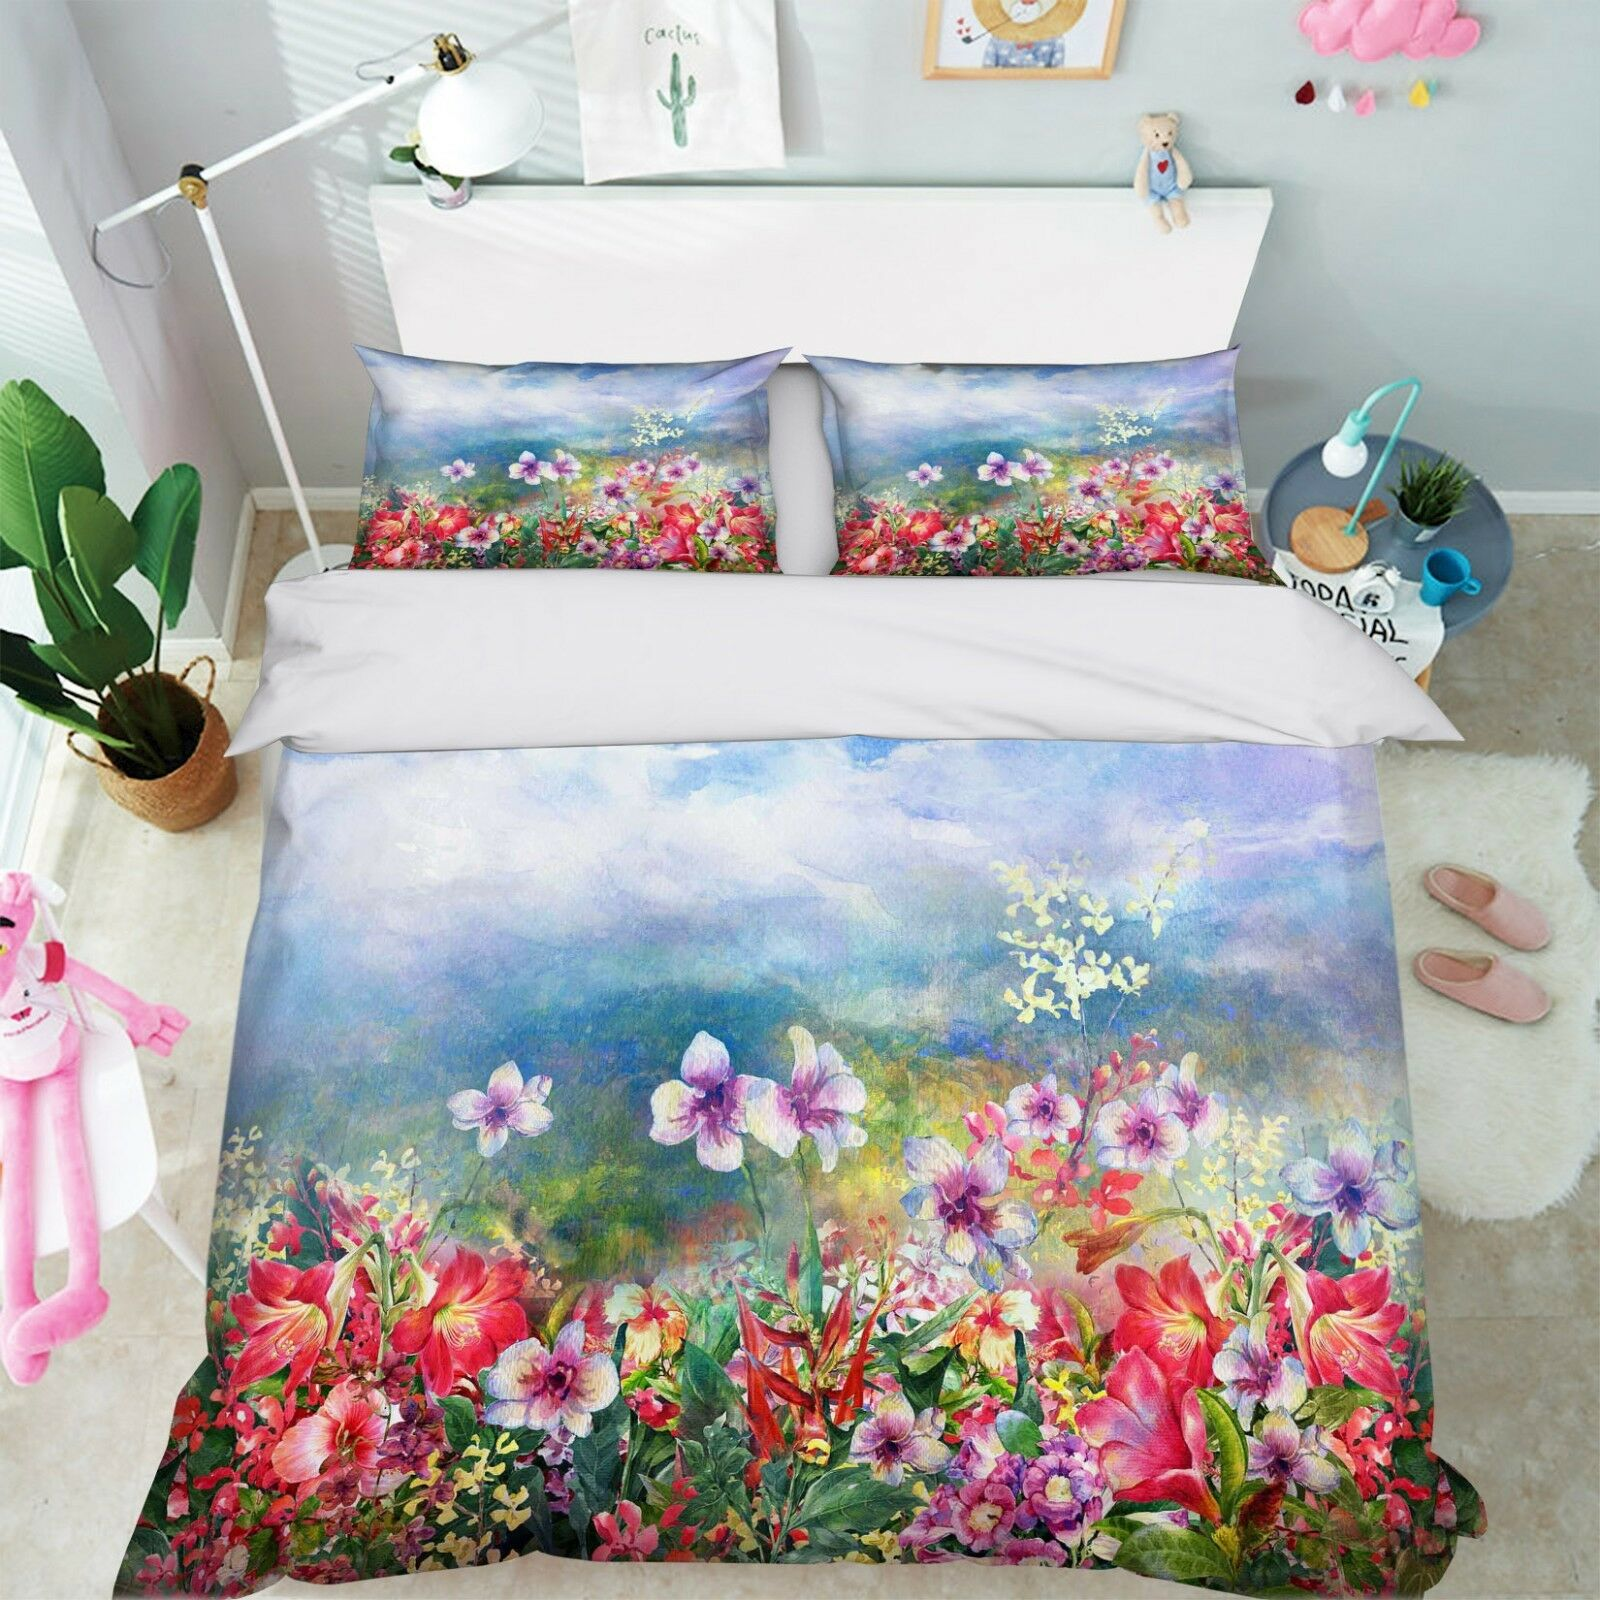 3D Flower Painting 5 Bed Pillowcases Quilt Duvet Cover Set Single Queen King AU